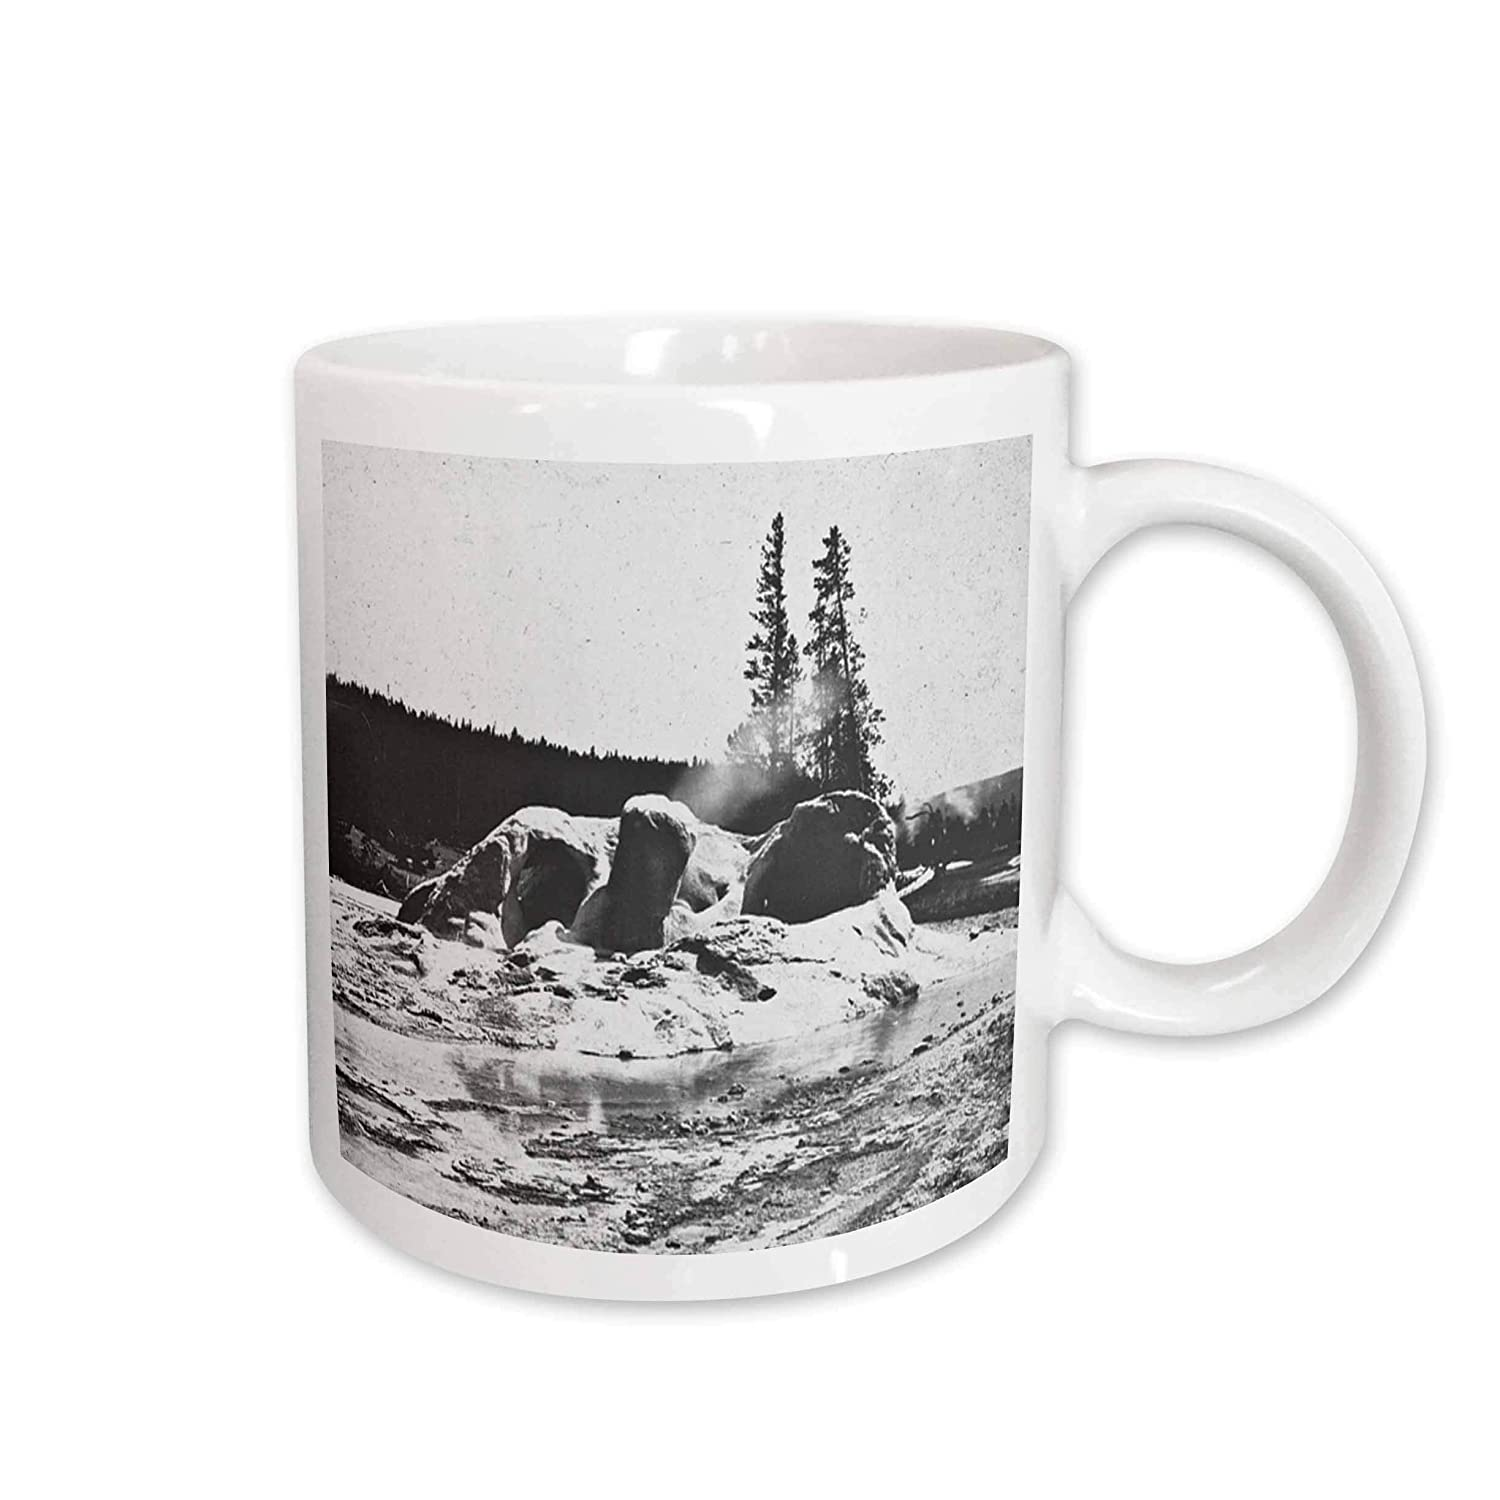 Buy 3drose Vintage Yellowstone National Park Geysers Victor Animatograph Co 10 Ceramic Mug 15 Ounce Online At Low Prices In India Amazon In